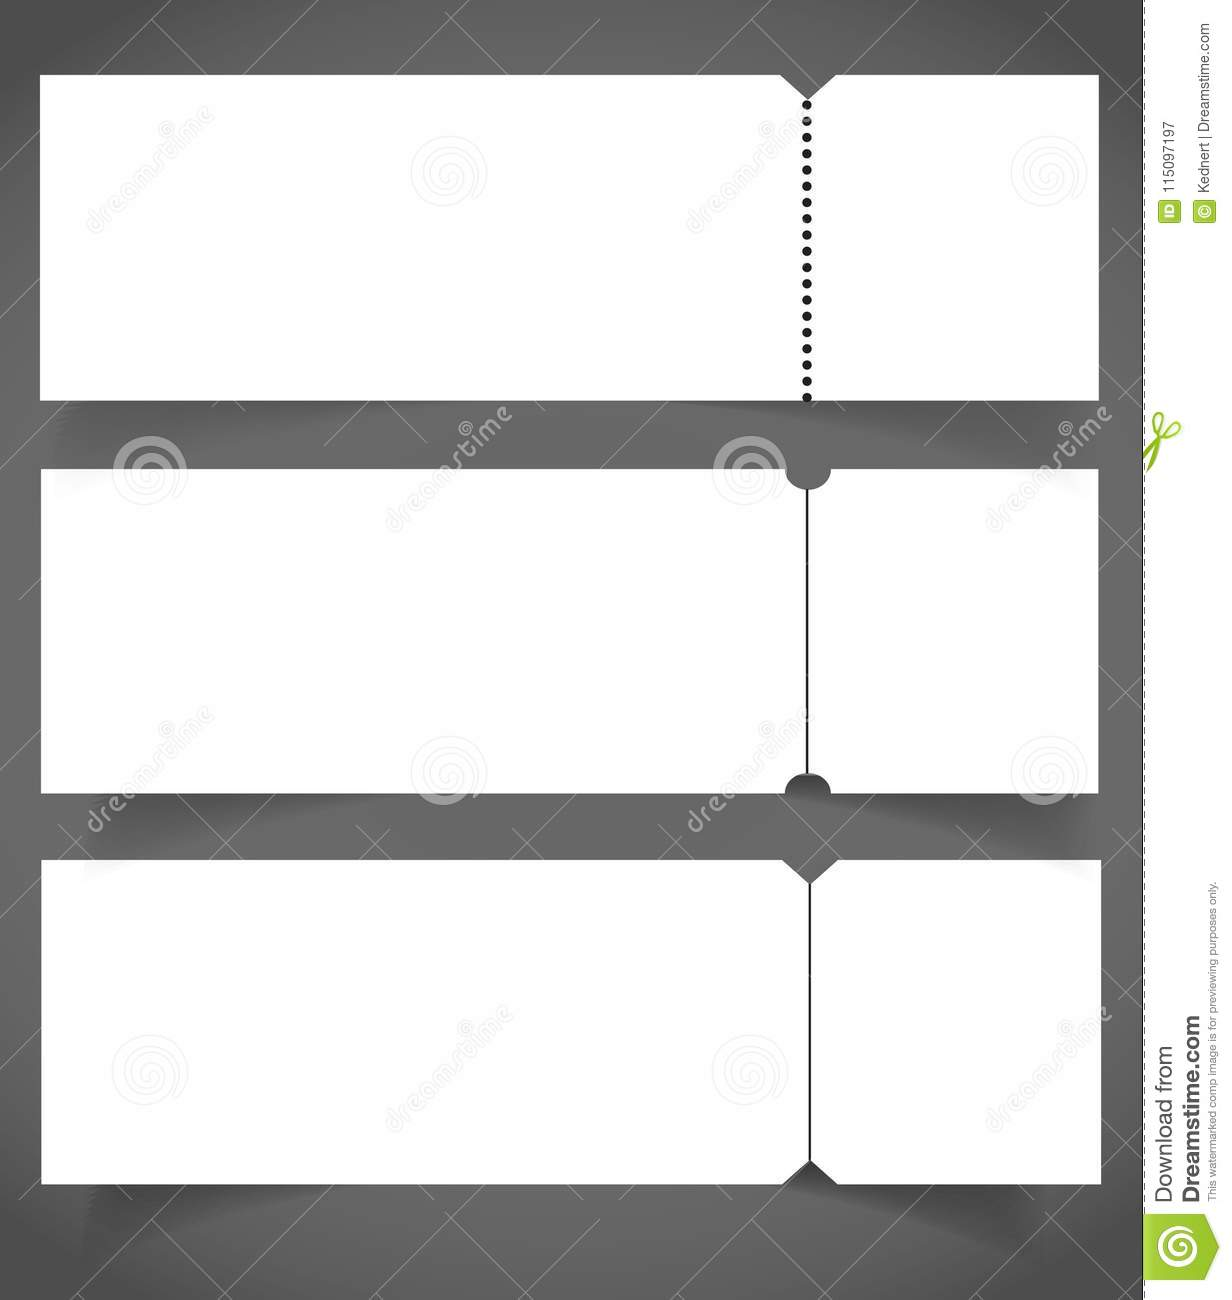 set of blank event concert ticket mockup template concert party or